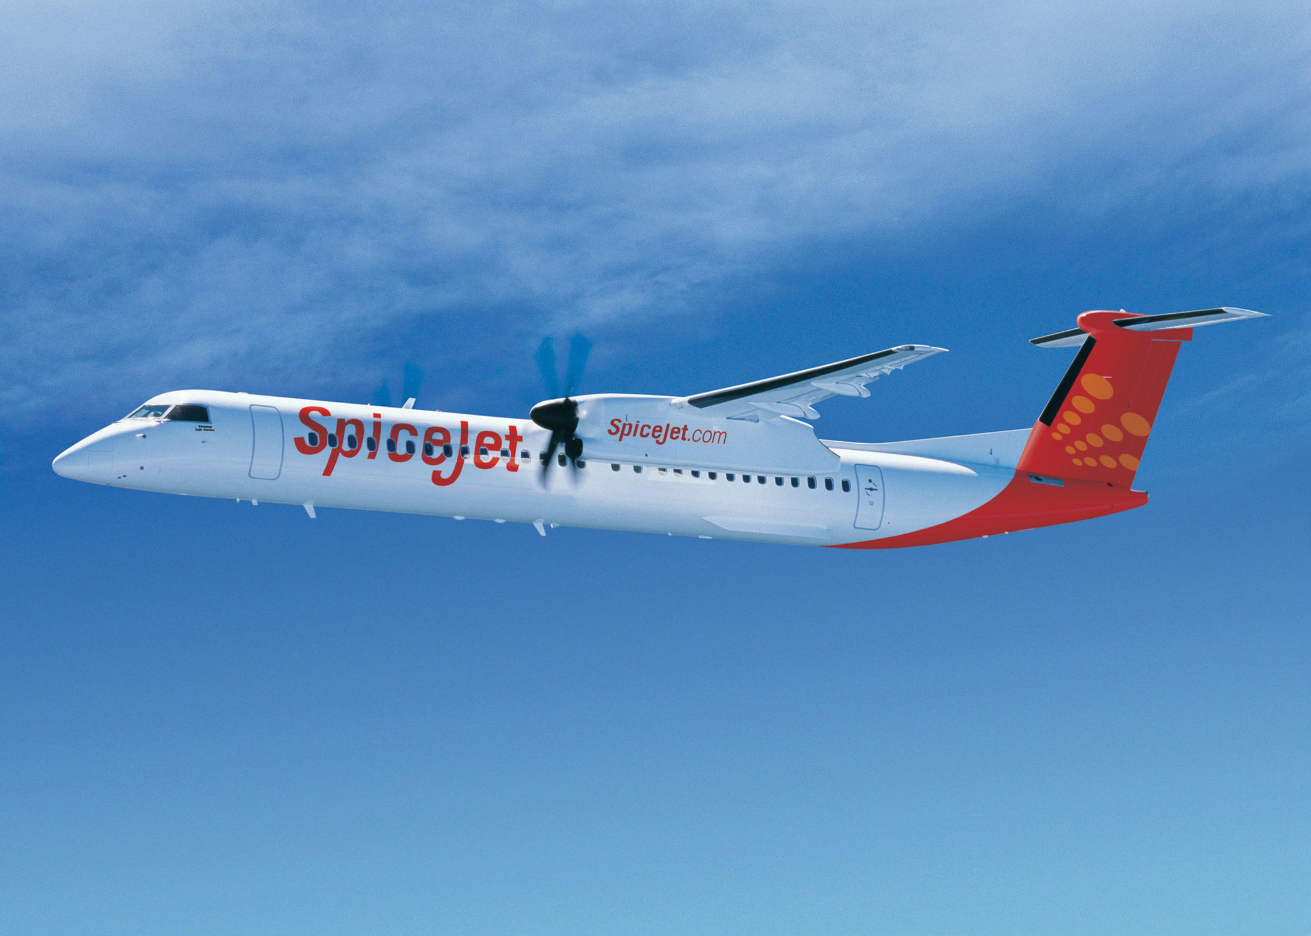 SpiceJet confirms order for up to 50 Q400s